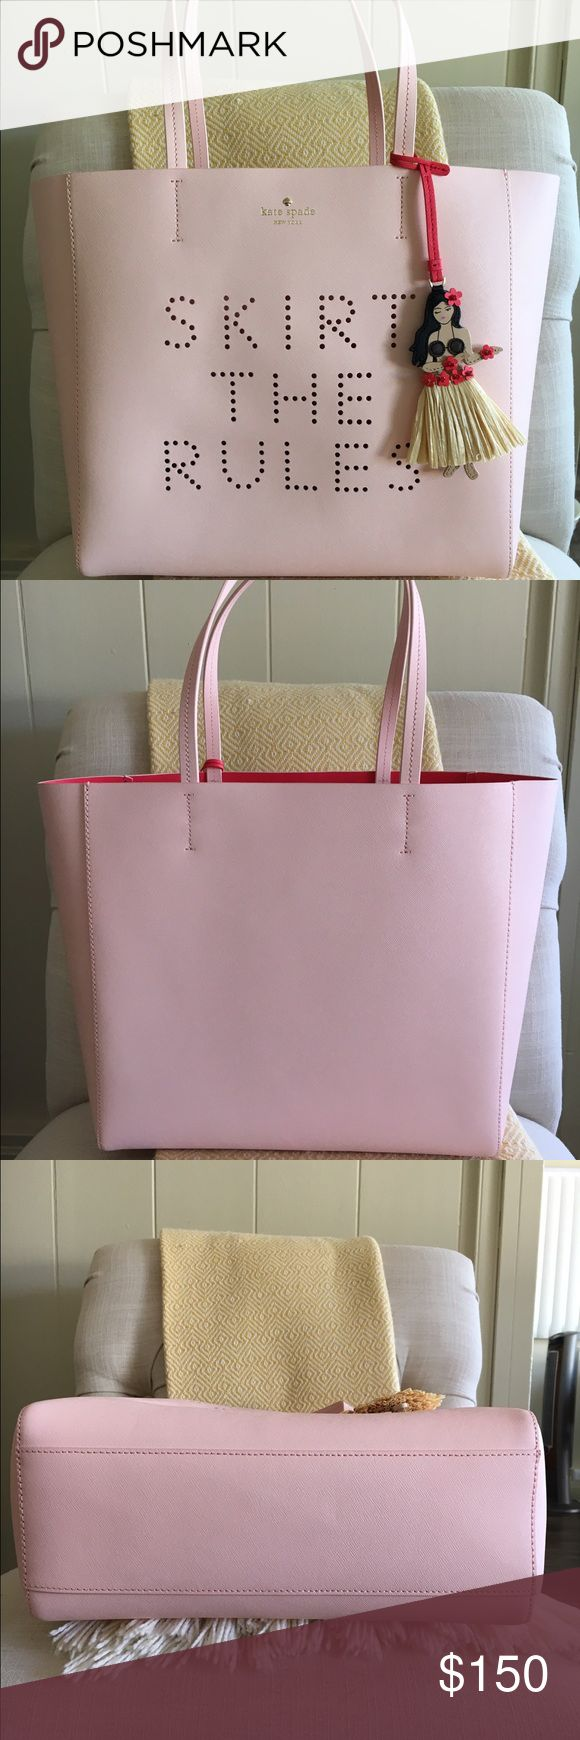 "Kate Spade Skirt the Rules Hallie Tote Kate Spade Skirt The Rules Hallie tote in excellent used condition. A darling hula girl charm adorns a Saffiano leather tote featuring a perforated 'skirt the rules' at the front for a fun, modern update. A bold interior hue completes the chic summer look. Approximate size is 12 ½""W x 12""H x 4""D and 8 ½"" strap drop. No holds or trades please. kate spade Bags"